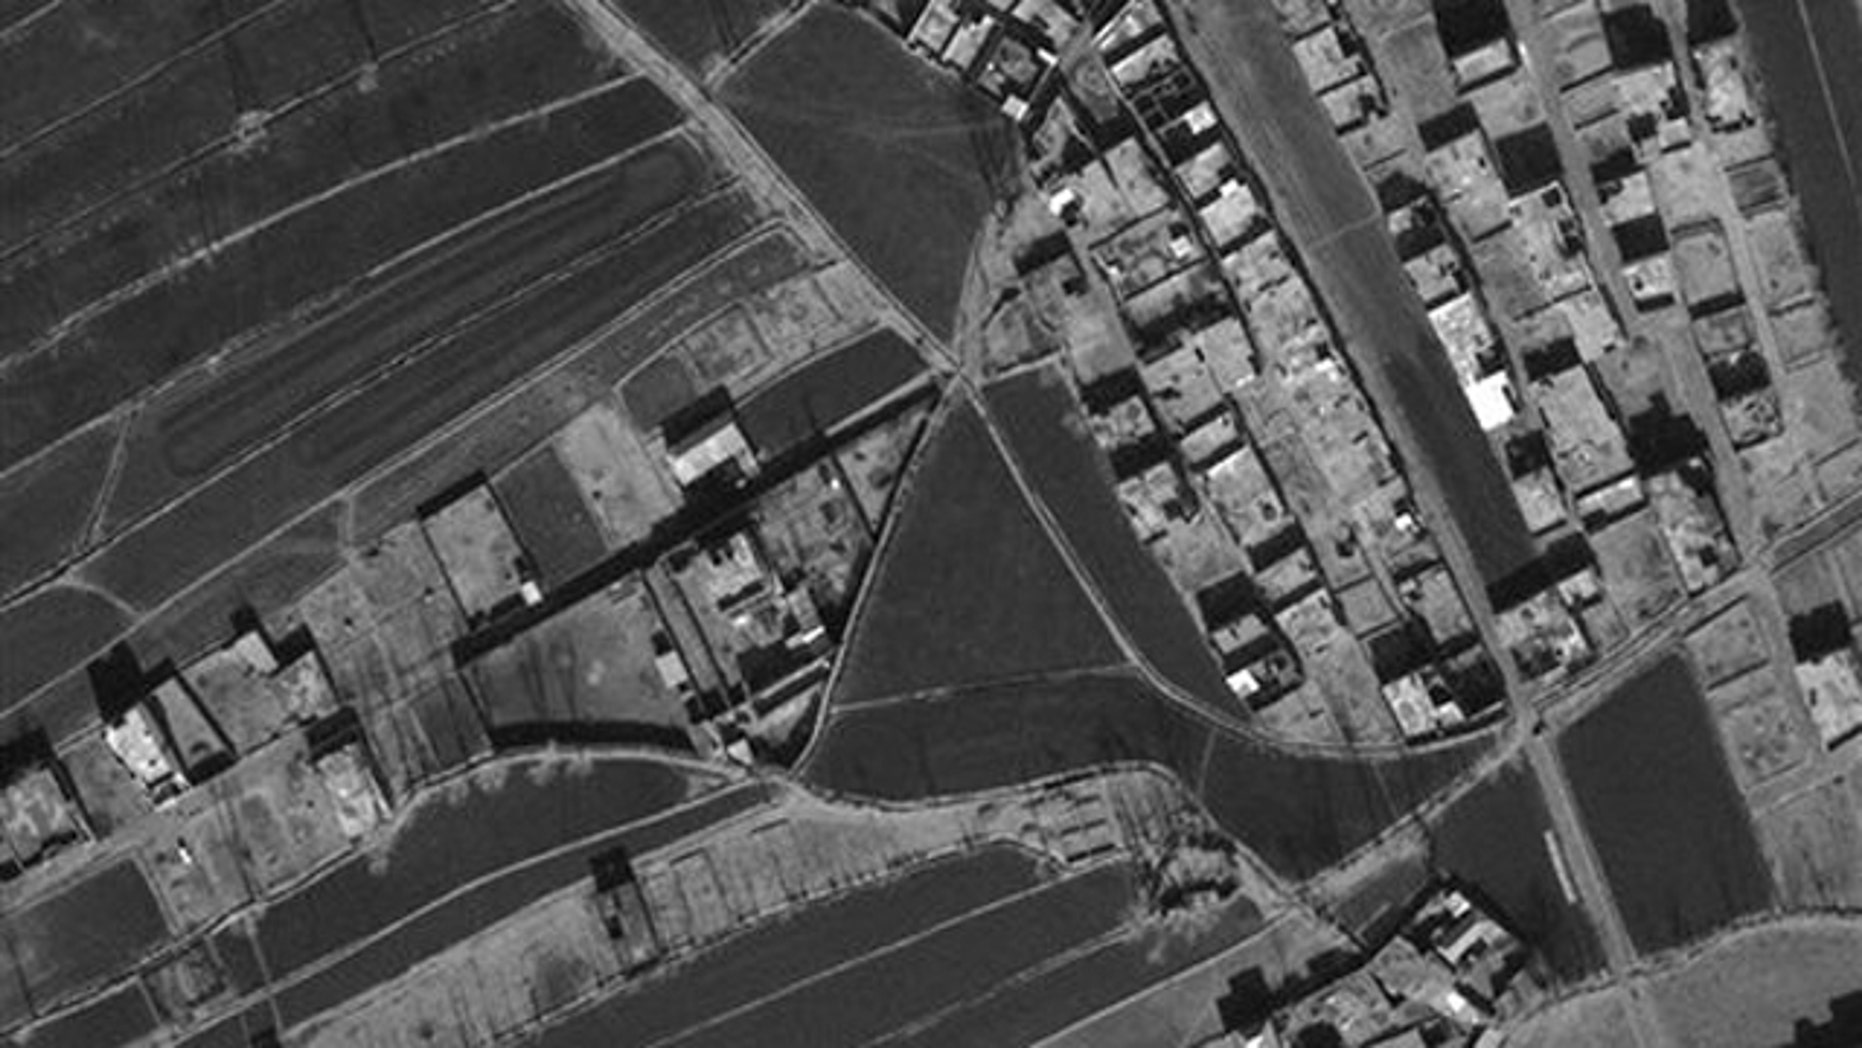 This Jan. 15, 2011 satellite image provided by DigitalGlobe shows the compound, center left, in Abbottabad, Pakistan, where Usama bin Laden lived.